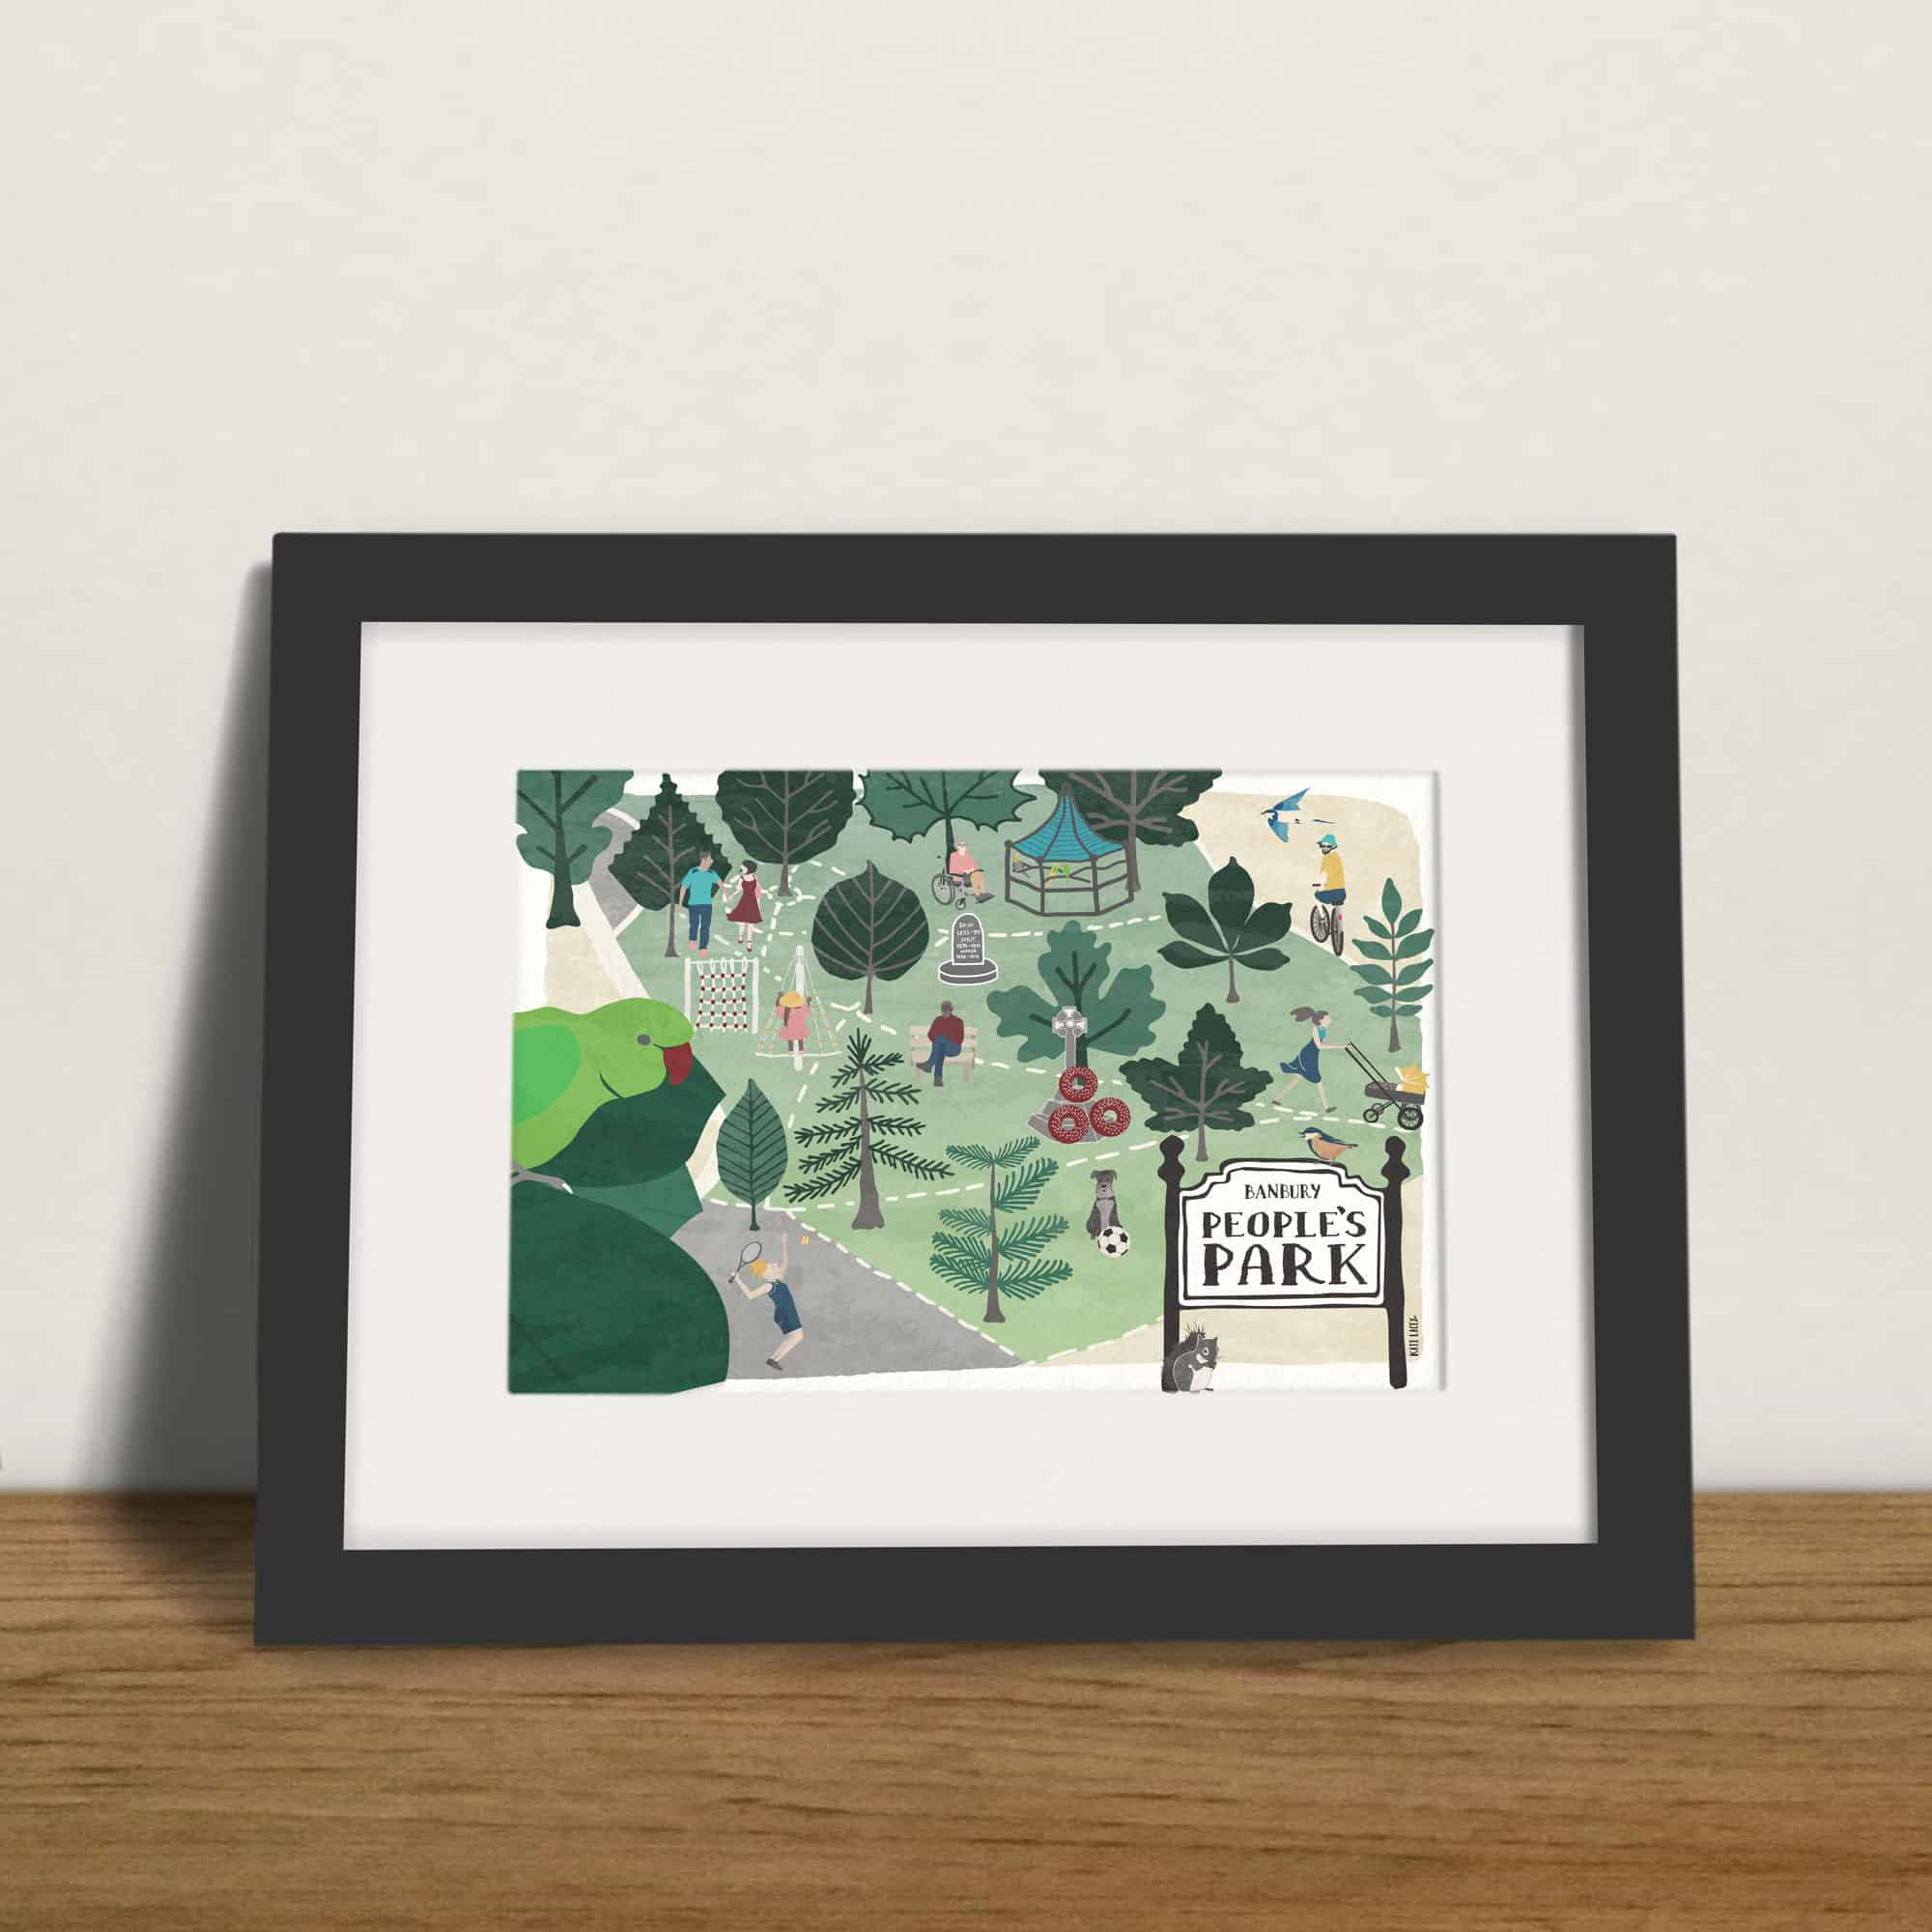 Banbury-People's-Park-Framed-Wall-Art-Print-Illustration-by-Kati-Lacey-Illustration